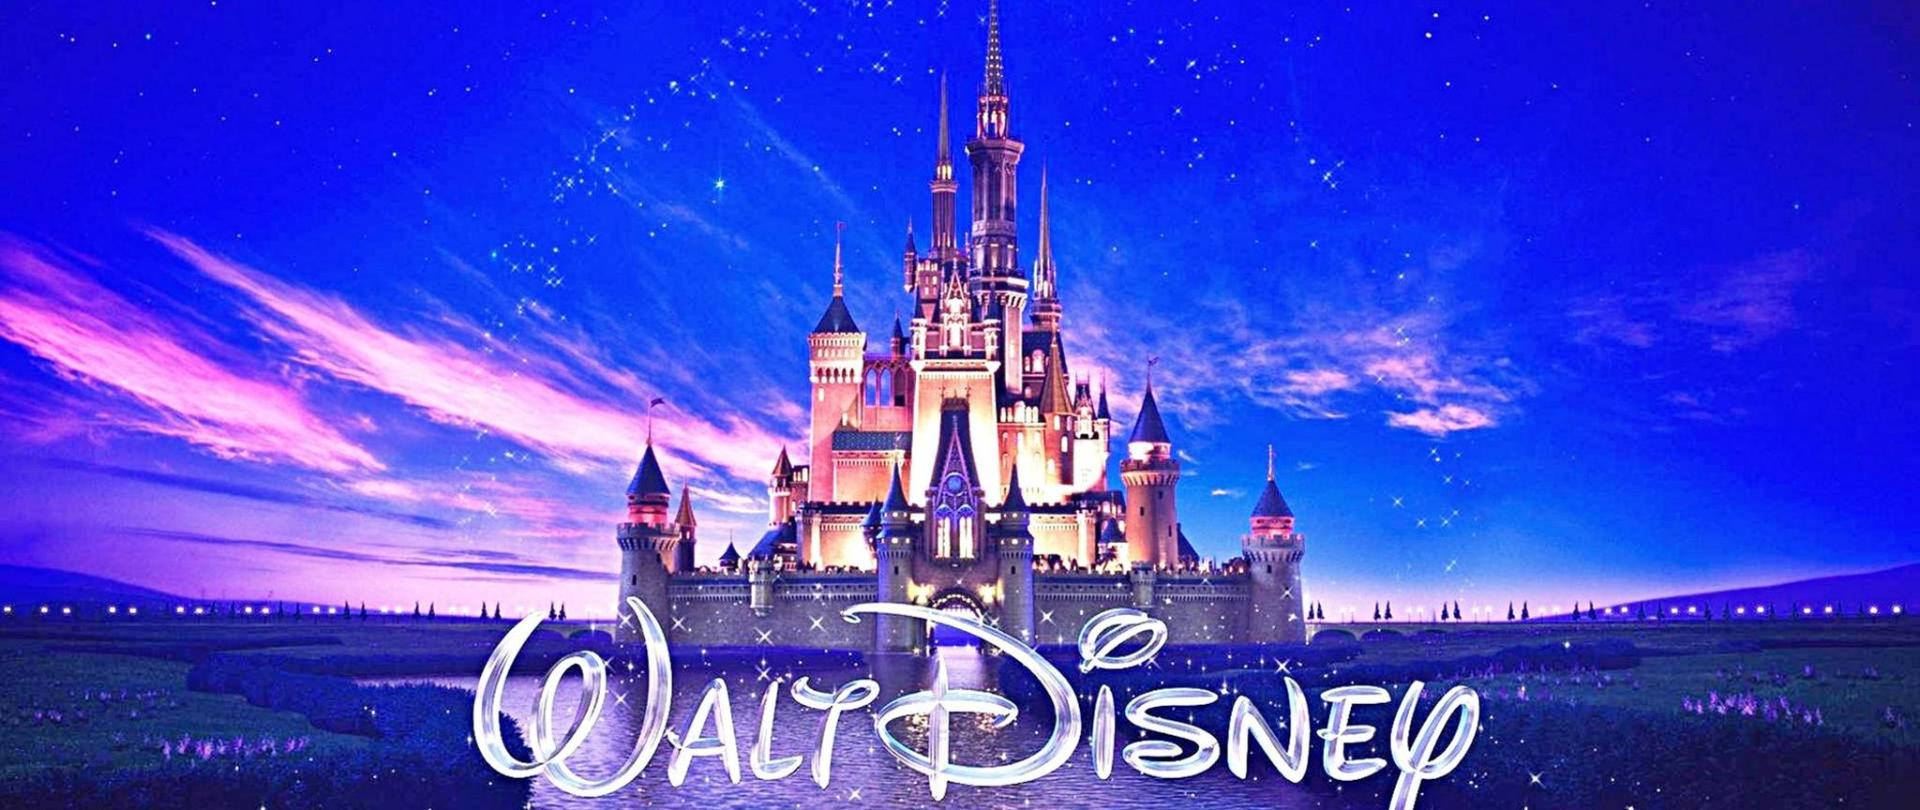 Walt-Disney-Screencaps-The-Walt-Disney-Logo-walt-disney-characters-31865565-2560-1440.jpg